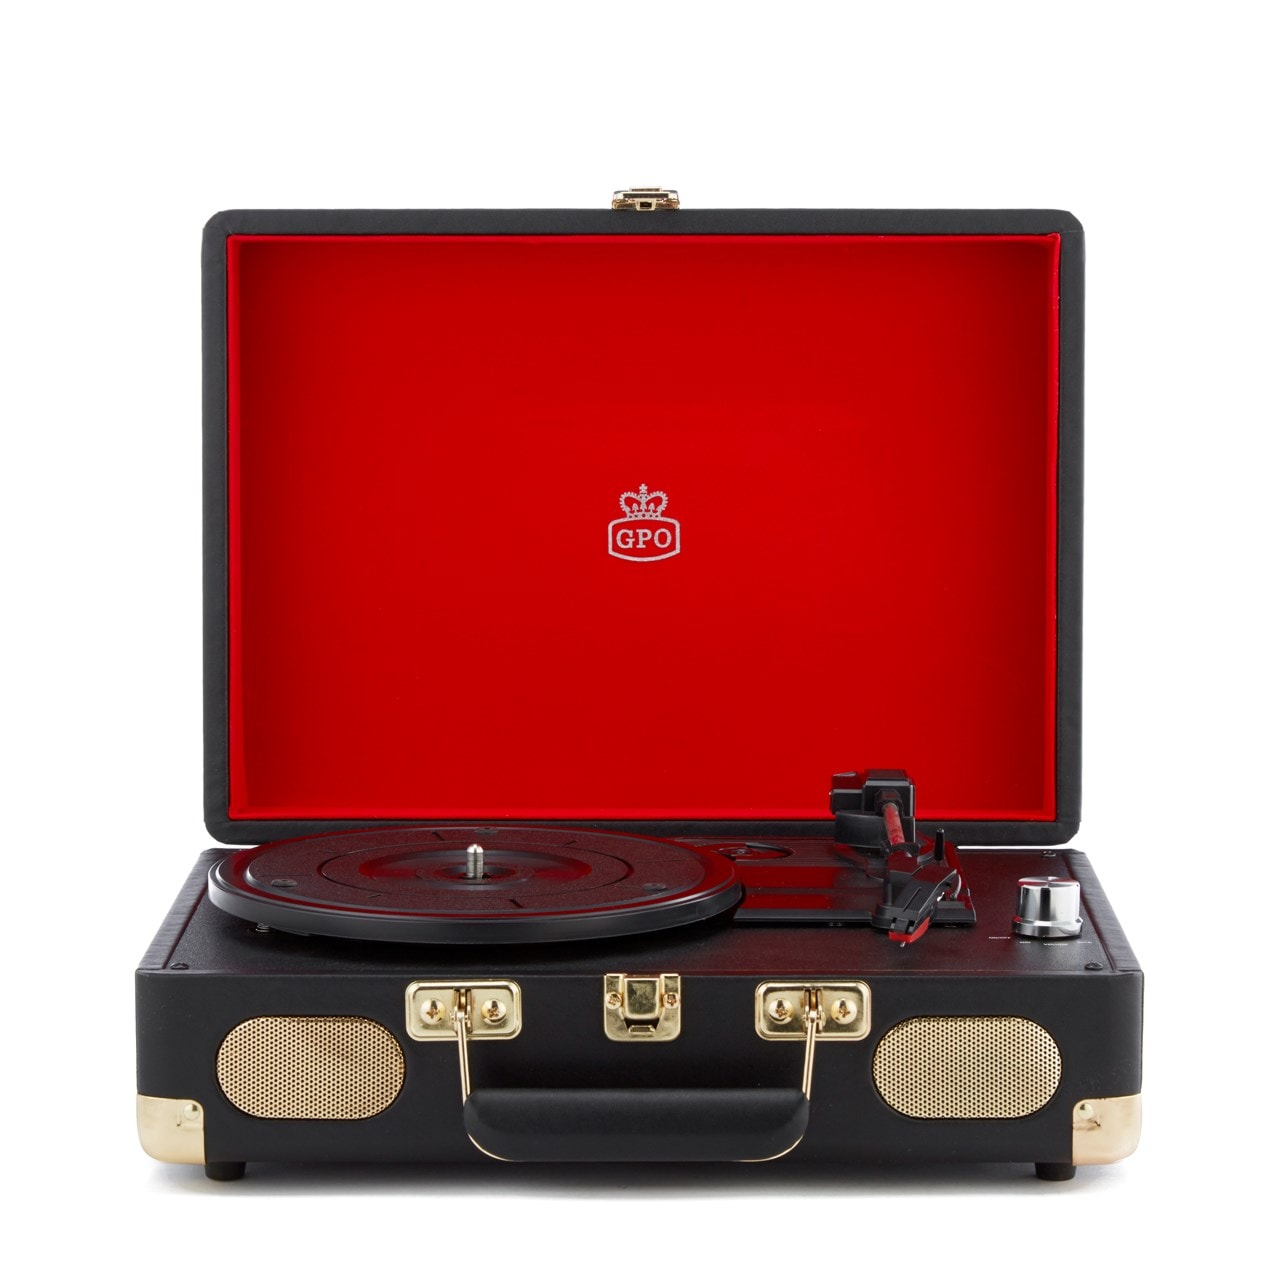 GPO Soho Black Turntable (hmv Exclusive) - 1